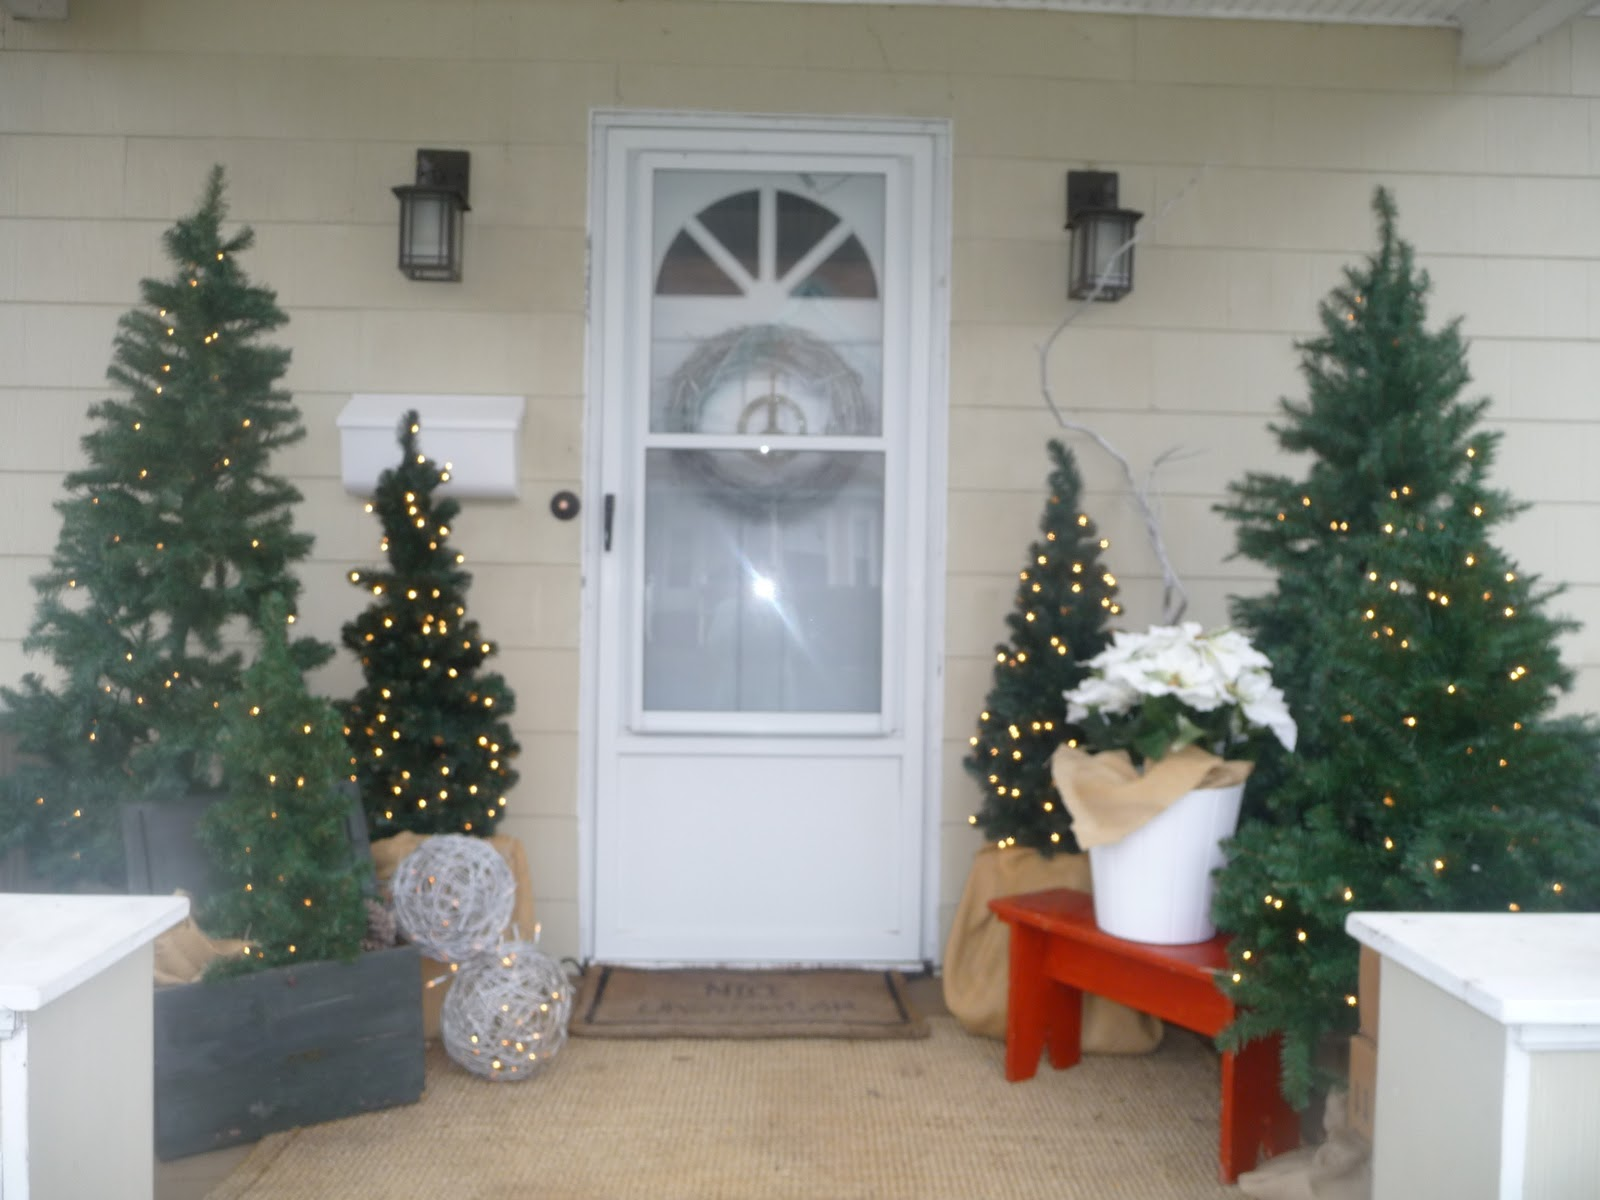 rita hurley christmas decorations front porch - How To Decorate Front Porch For Christmas